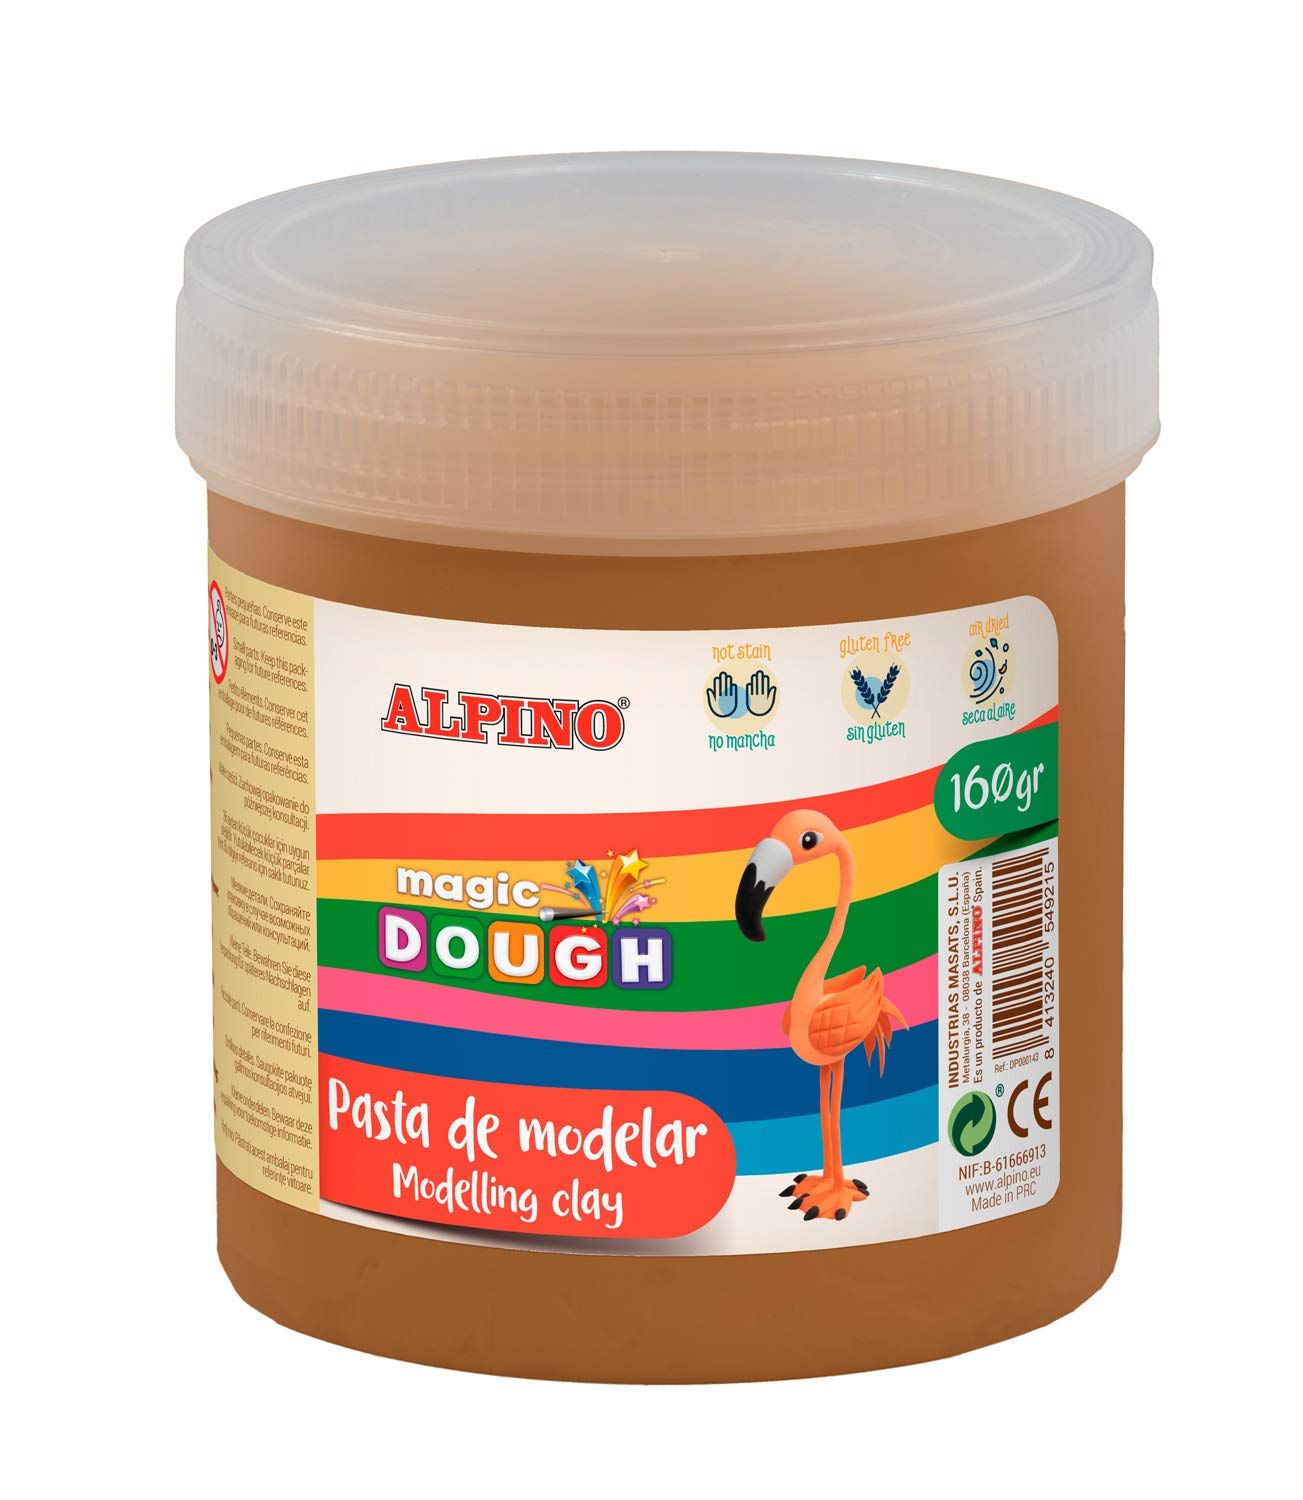 Pasta modelar ALPINO Magic Dough 160g marrón DP000149